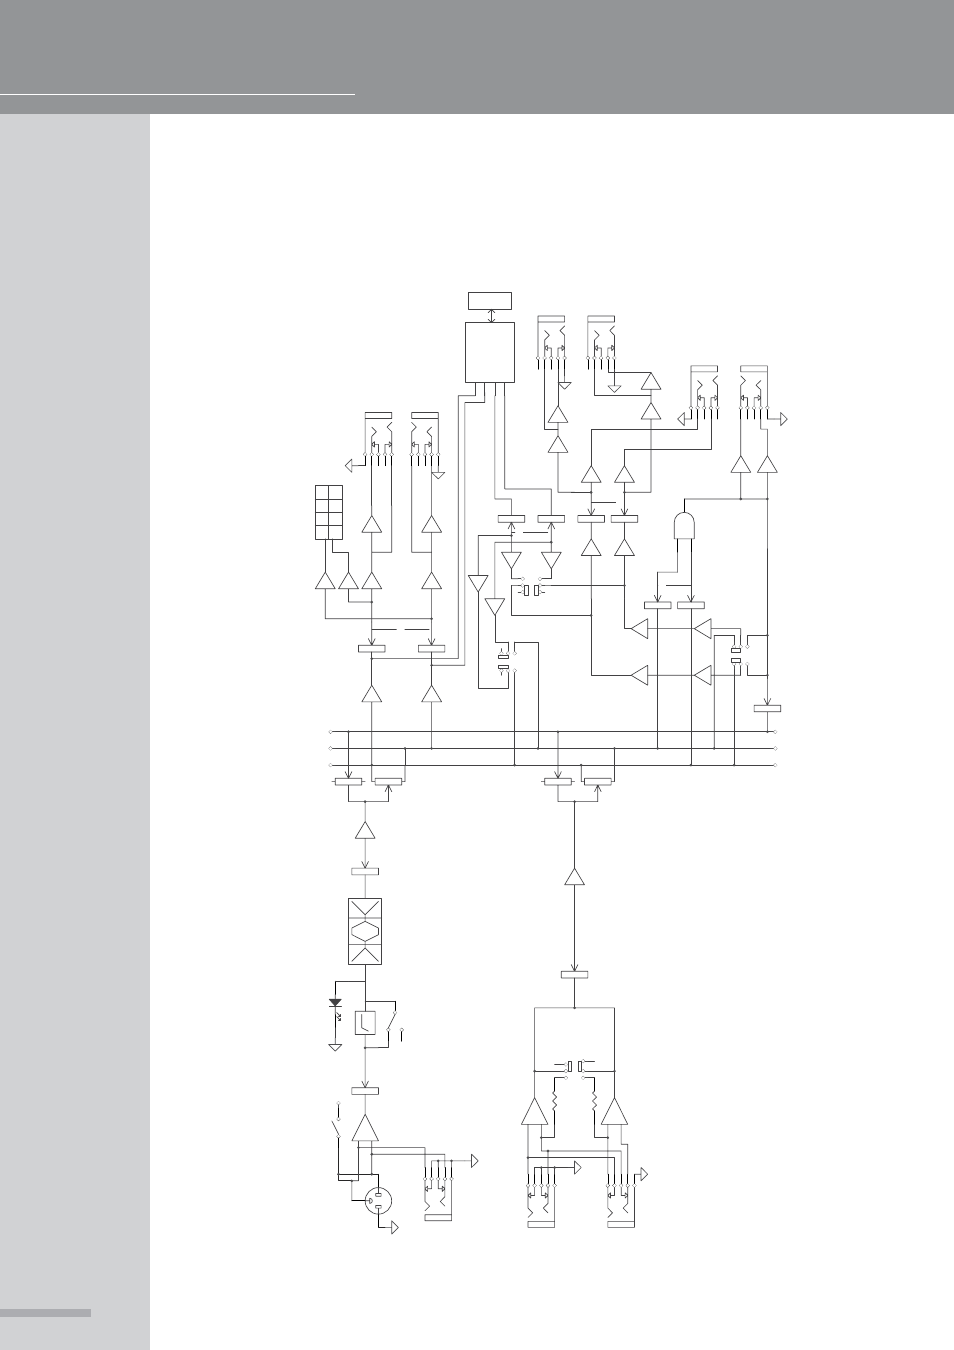 Manualguide Usb Diagram Wiring Manual Image Not Found Or Type Unknown